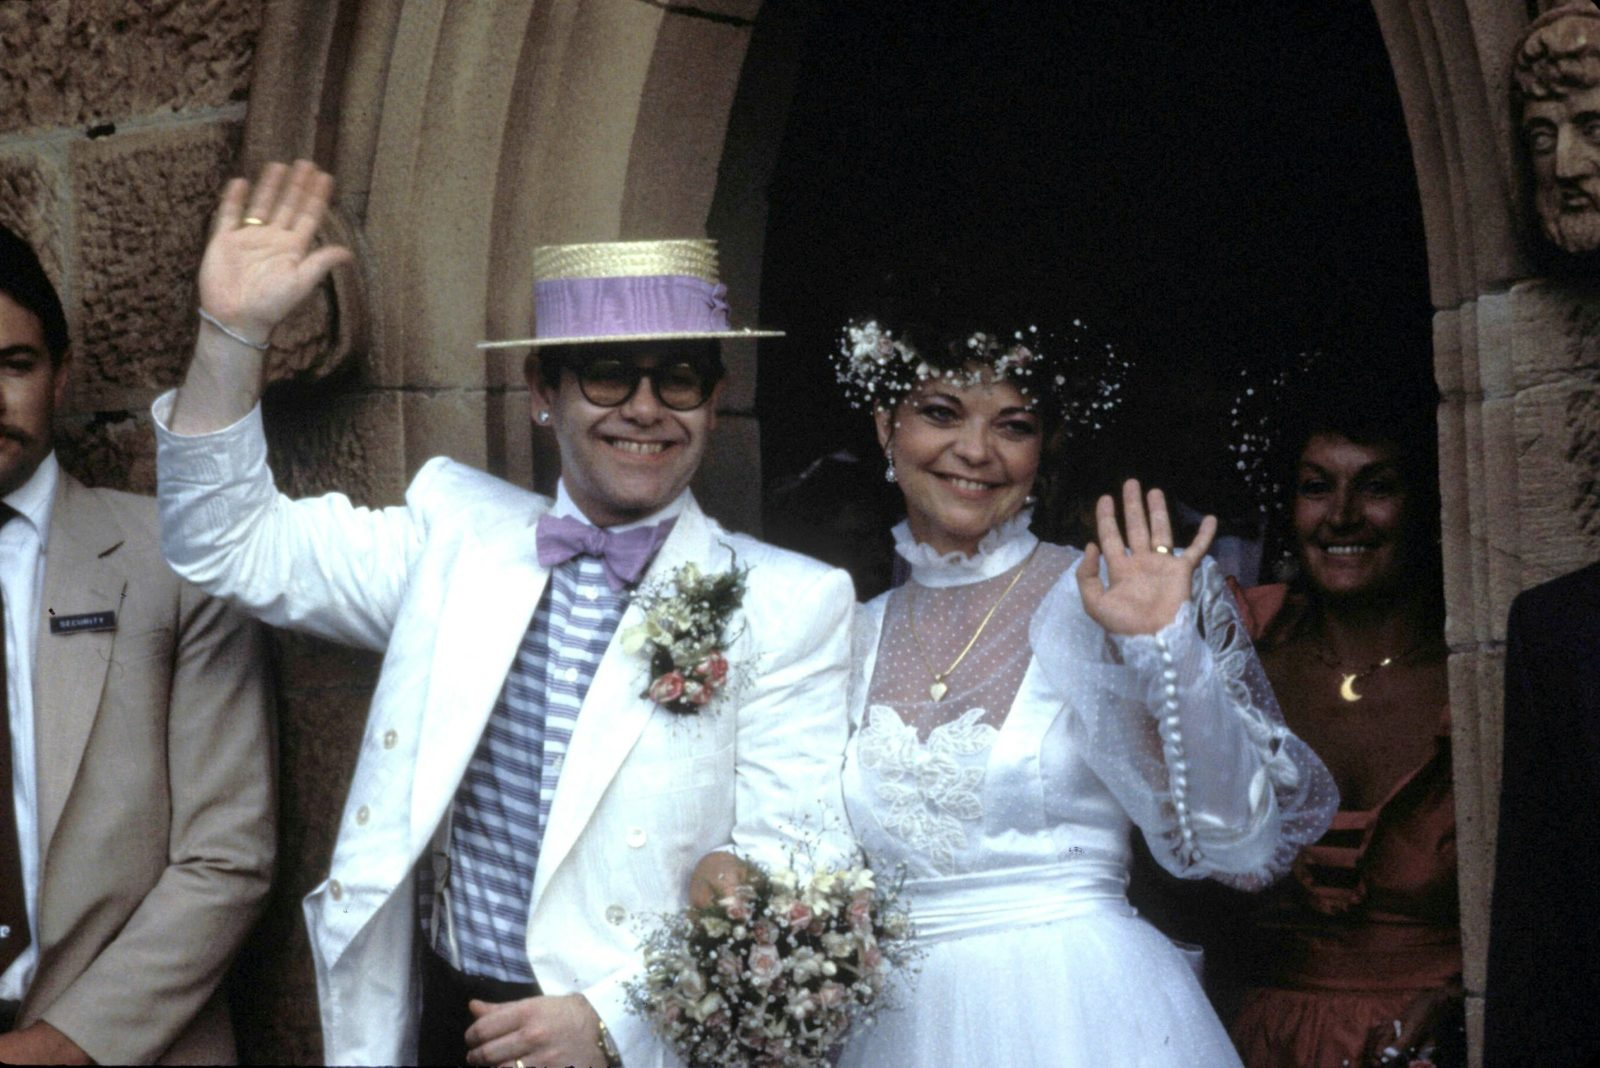 Elton John went on to marry Renate Blauel in the 80s. Source: Getty.